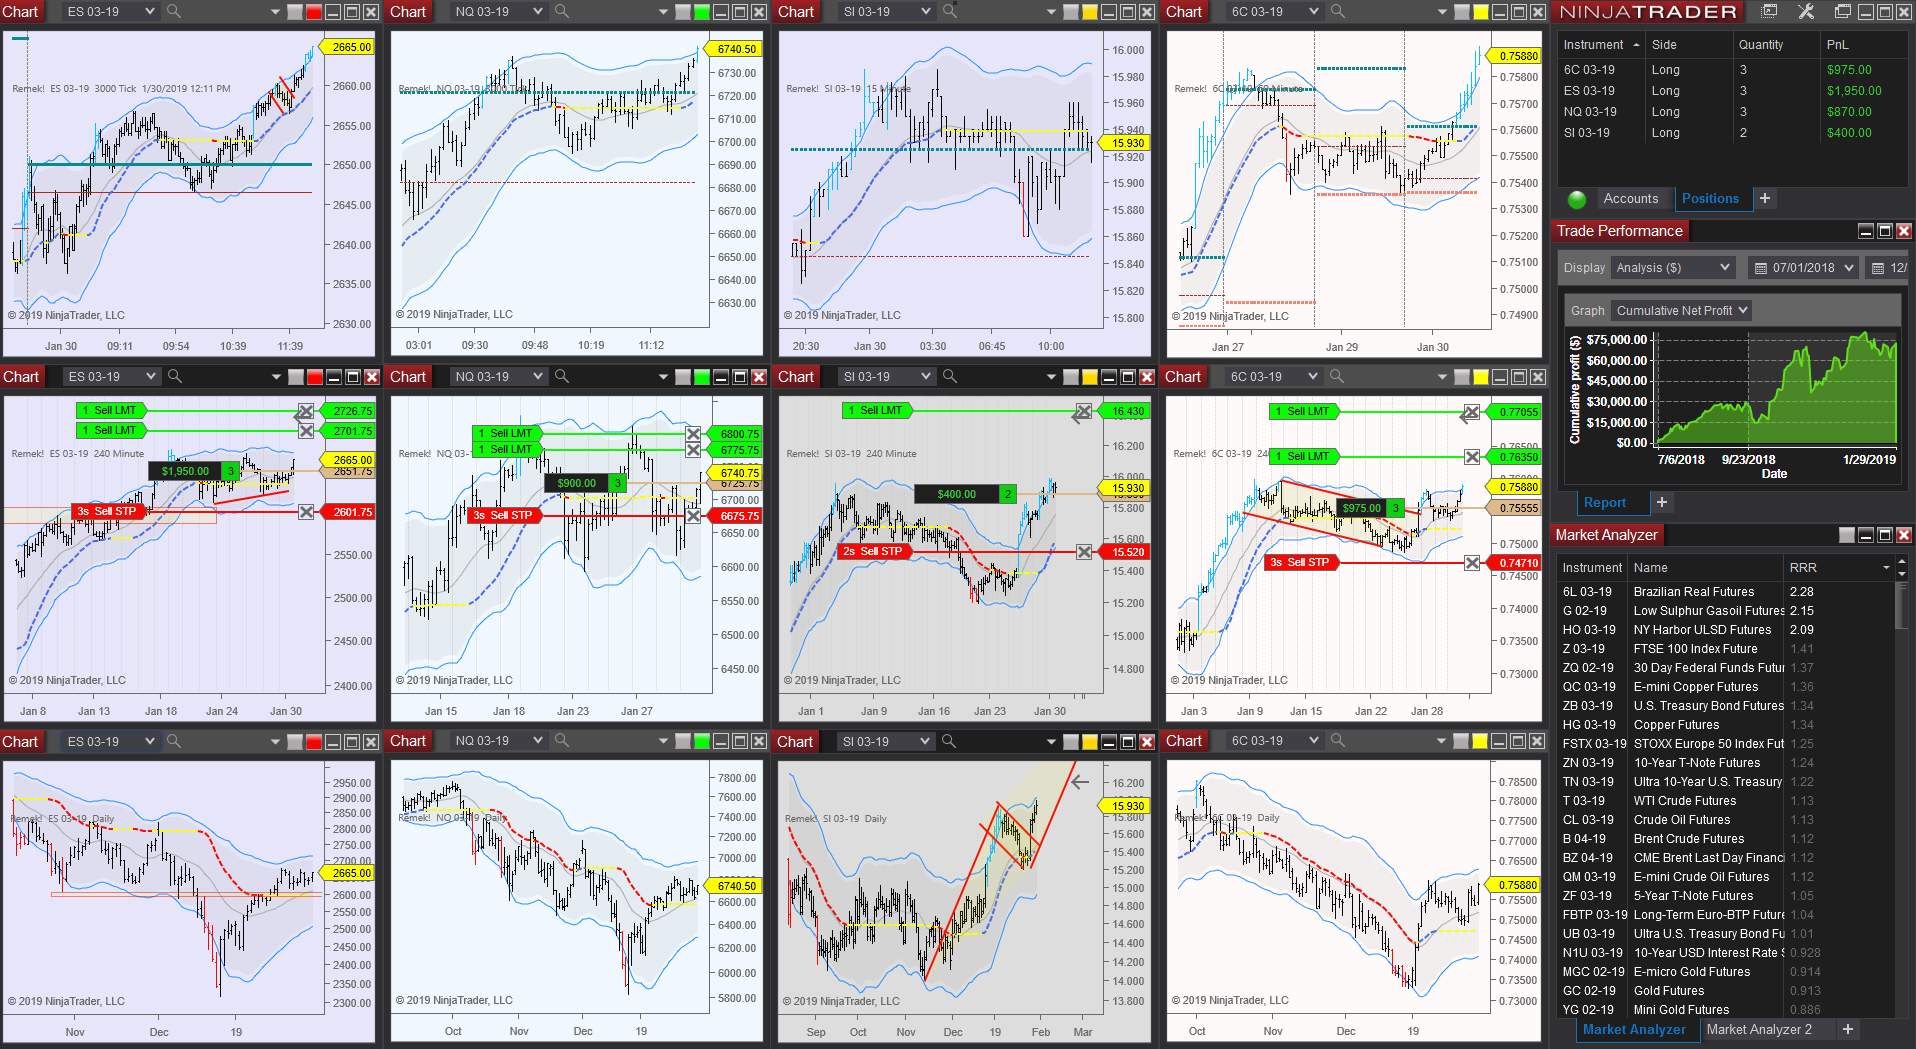 Trading US futures with the Remek! method, using Market Analyzer for scanning.